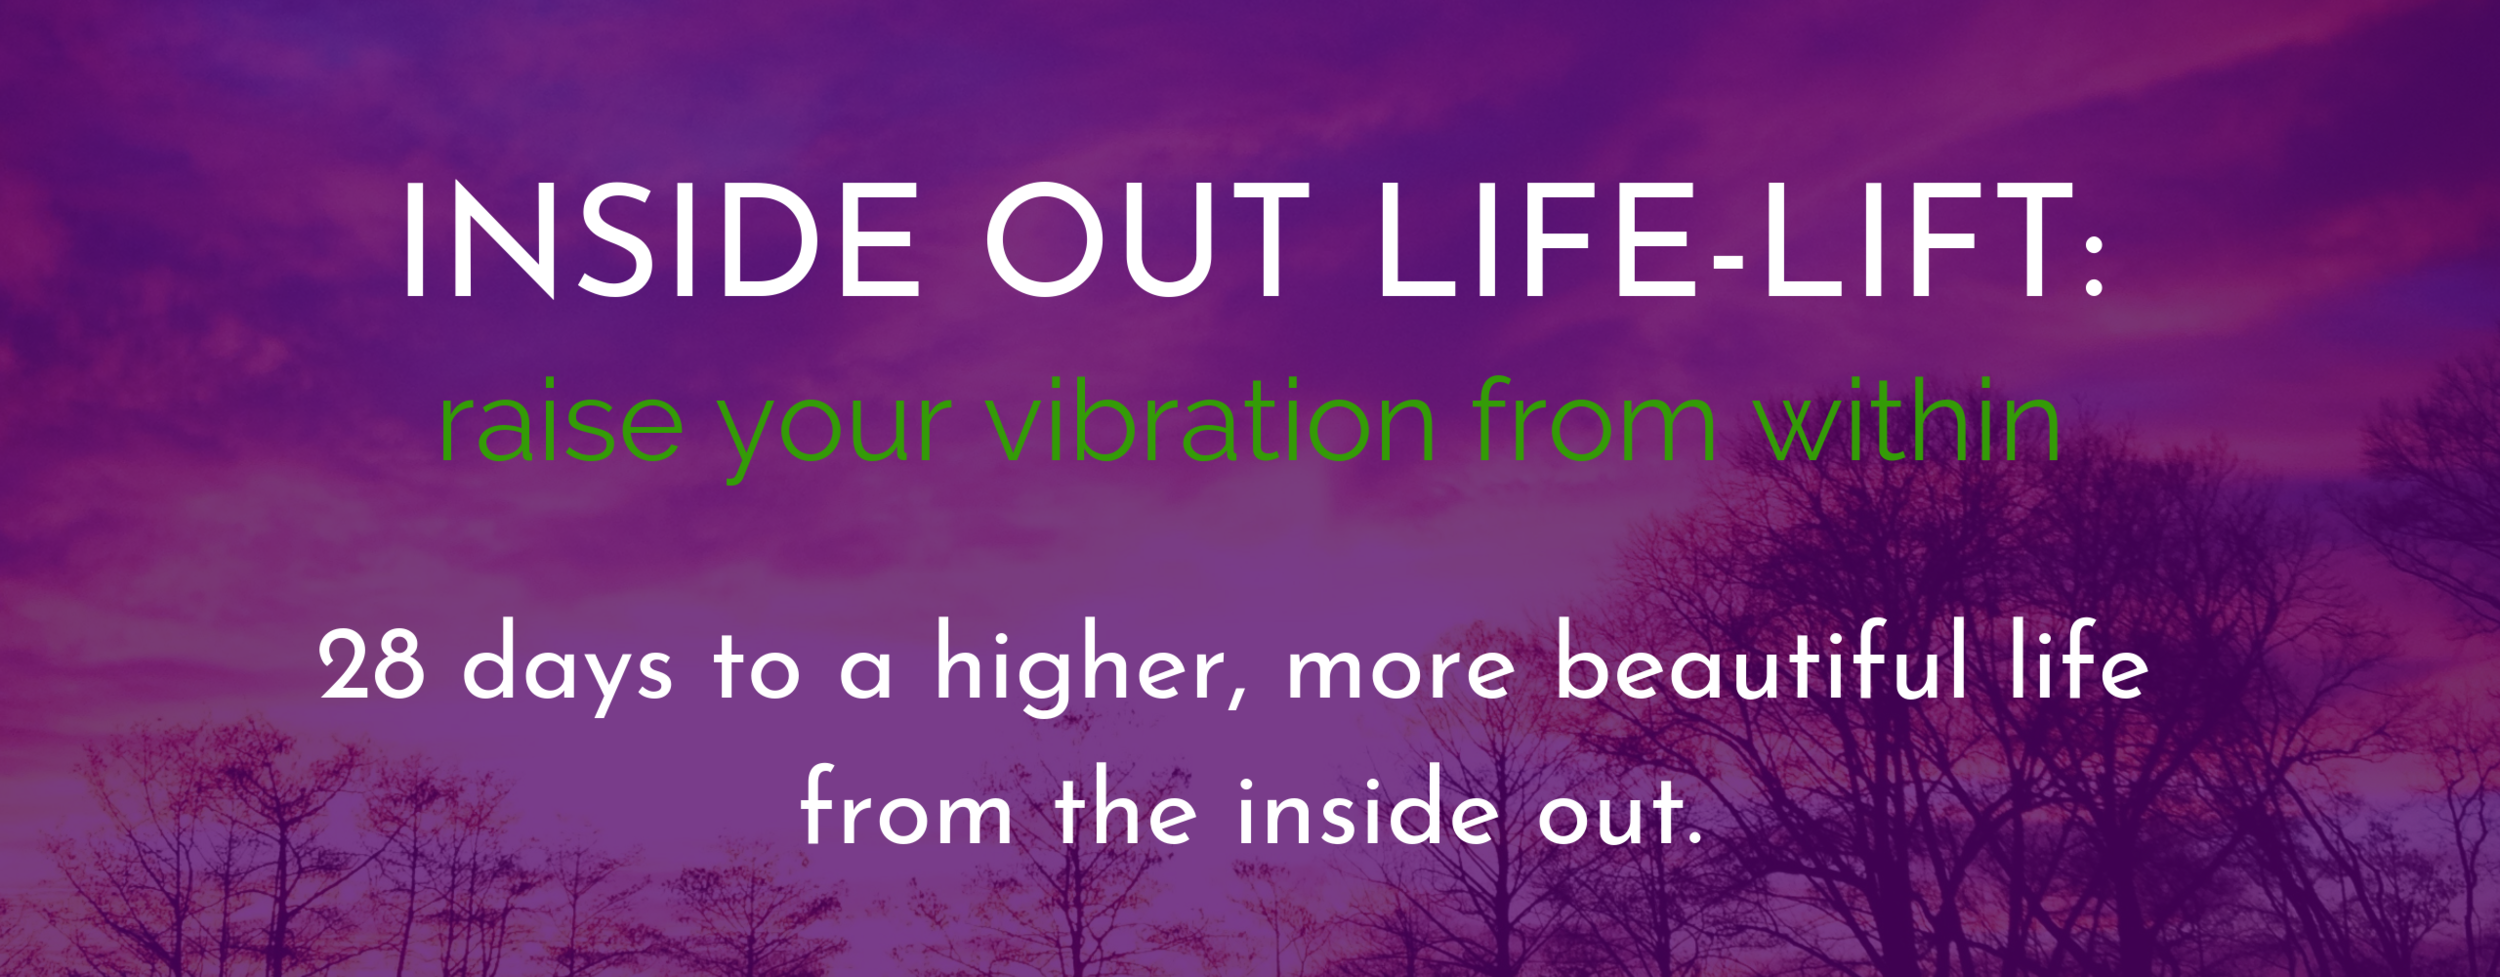 INSIDE OUT LIFE-LIFT_ (1).png